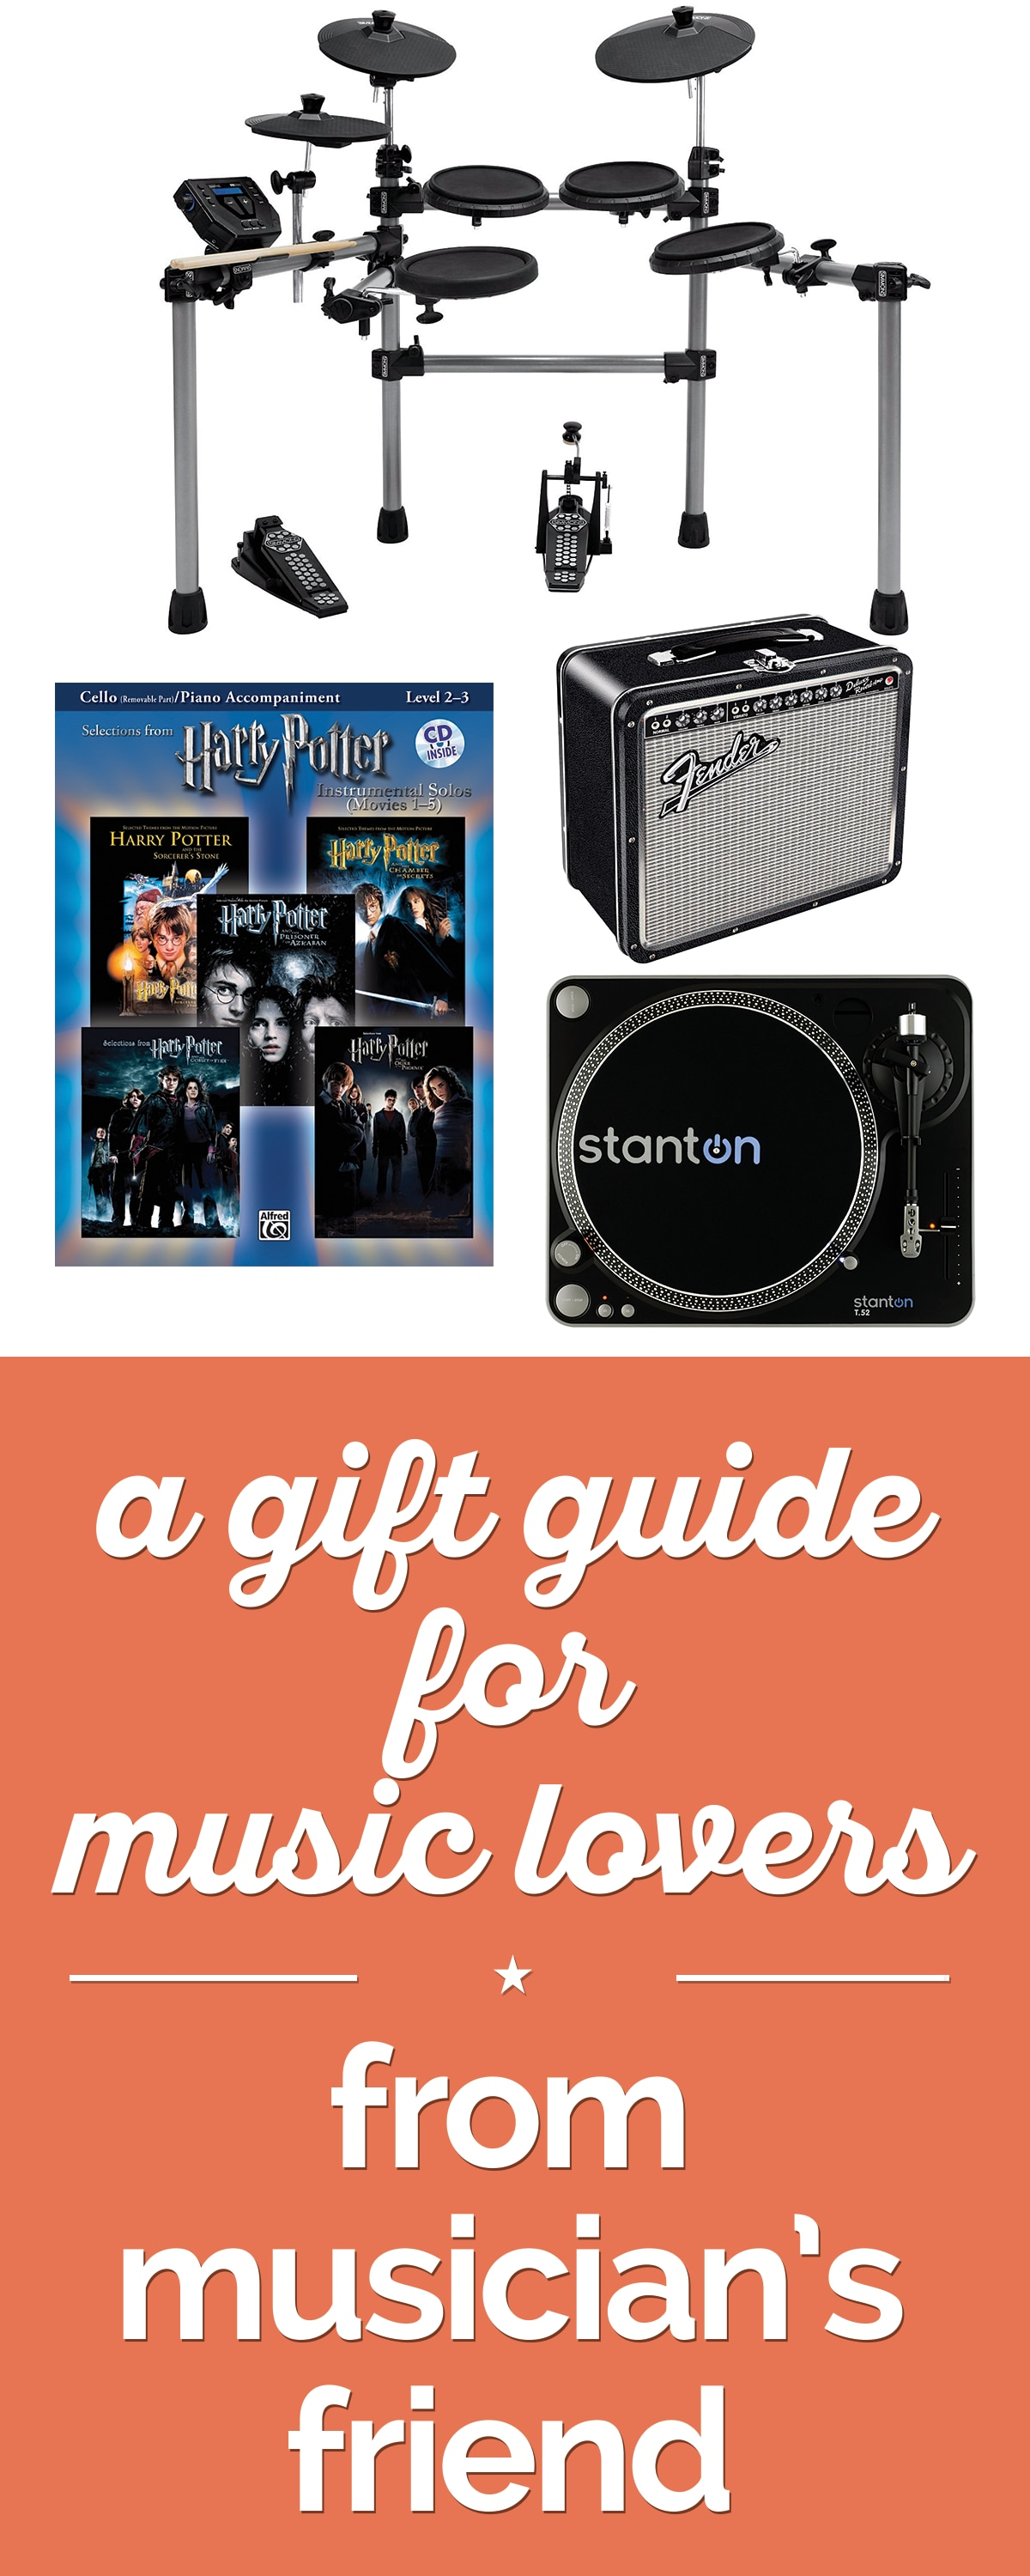 A Gift Guide for Music Lovers from Musician's Friend | thegoodstuff